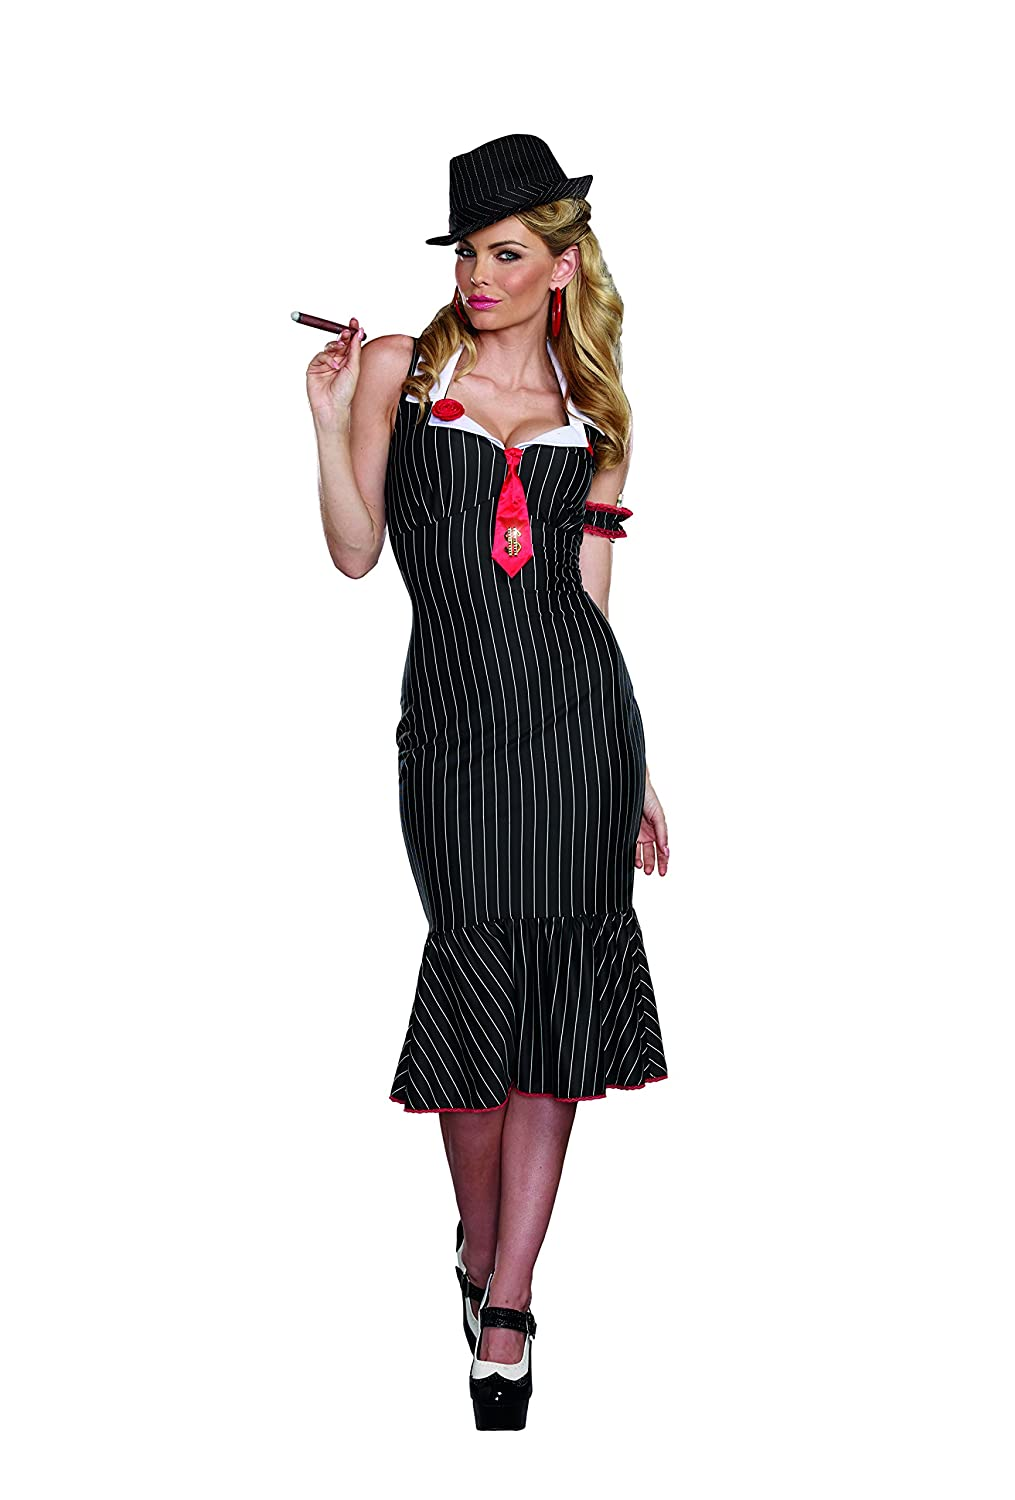 1930s Costumes- Bride of Frankenstein, Betty Boop, Olive Oyl, Bonnie & Clyde Dreamgirl Womens Deadly Dames Pinstripe Gangster Costume $67.00 AT vintagedancer.com